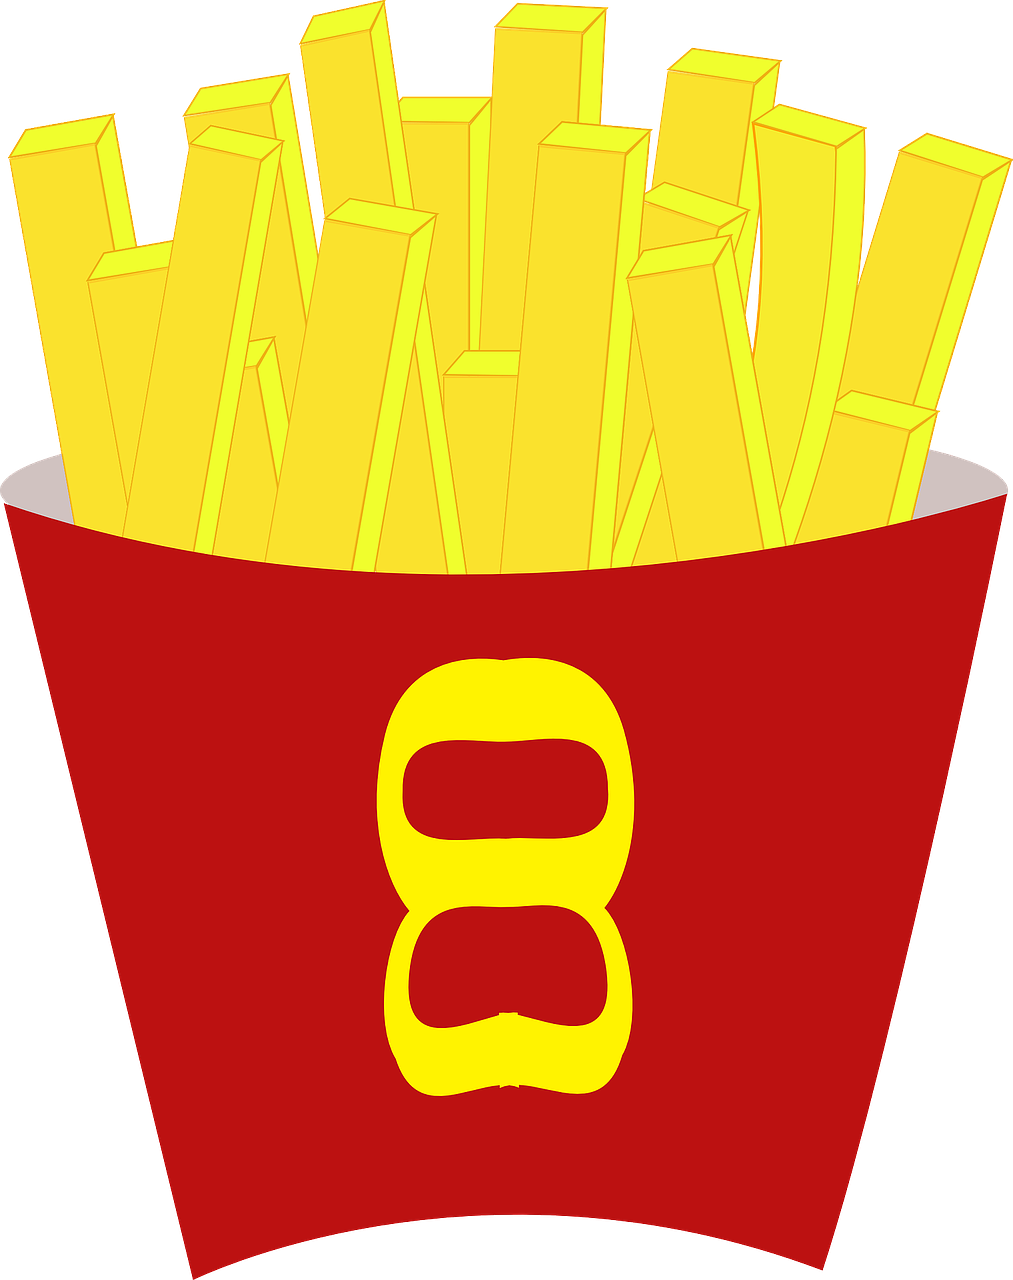 french,fries,food,potato,fried,meal,snack,tasty,junk,free vector graphics,free pictures, free photos, free images, royalty free, free illustrations, public domain